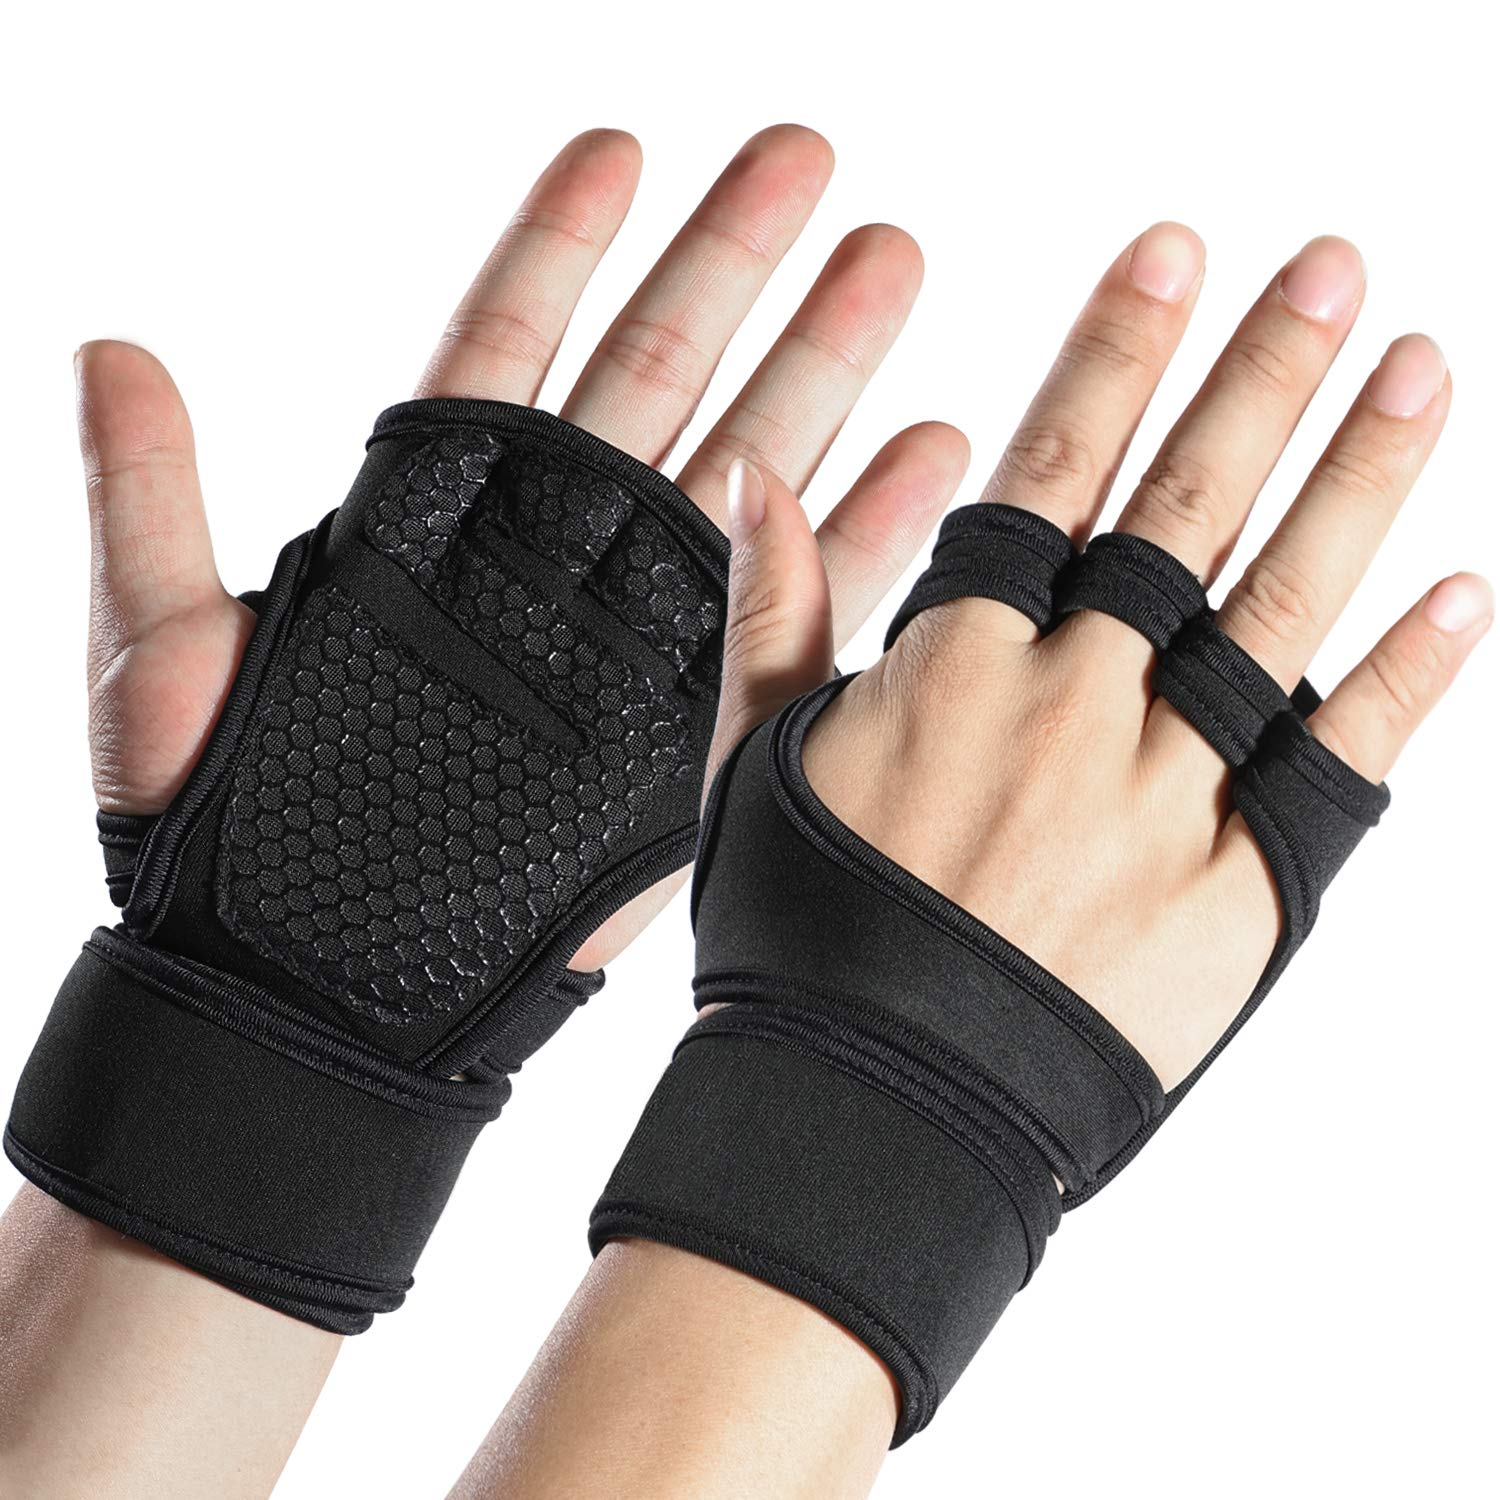 Men's Leather Gym Workout Gloves